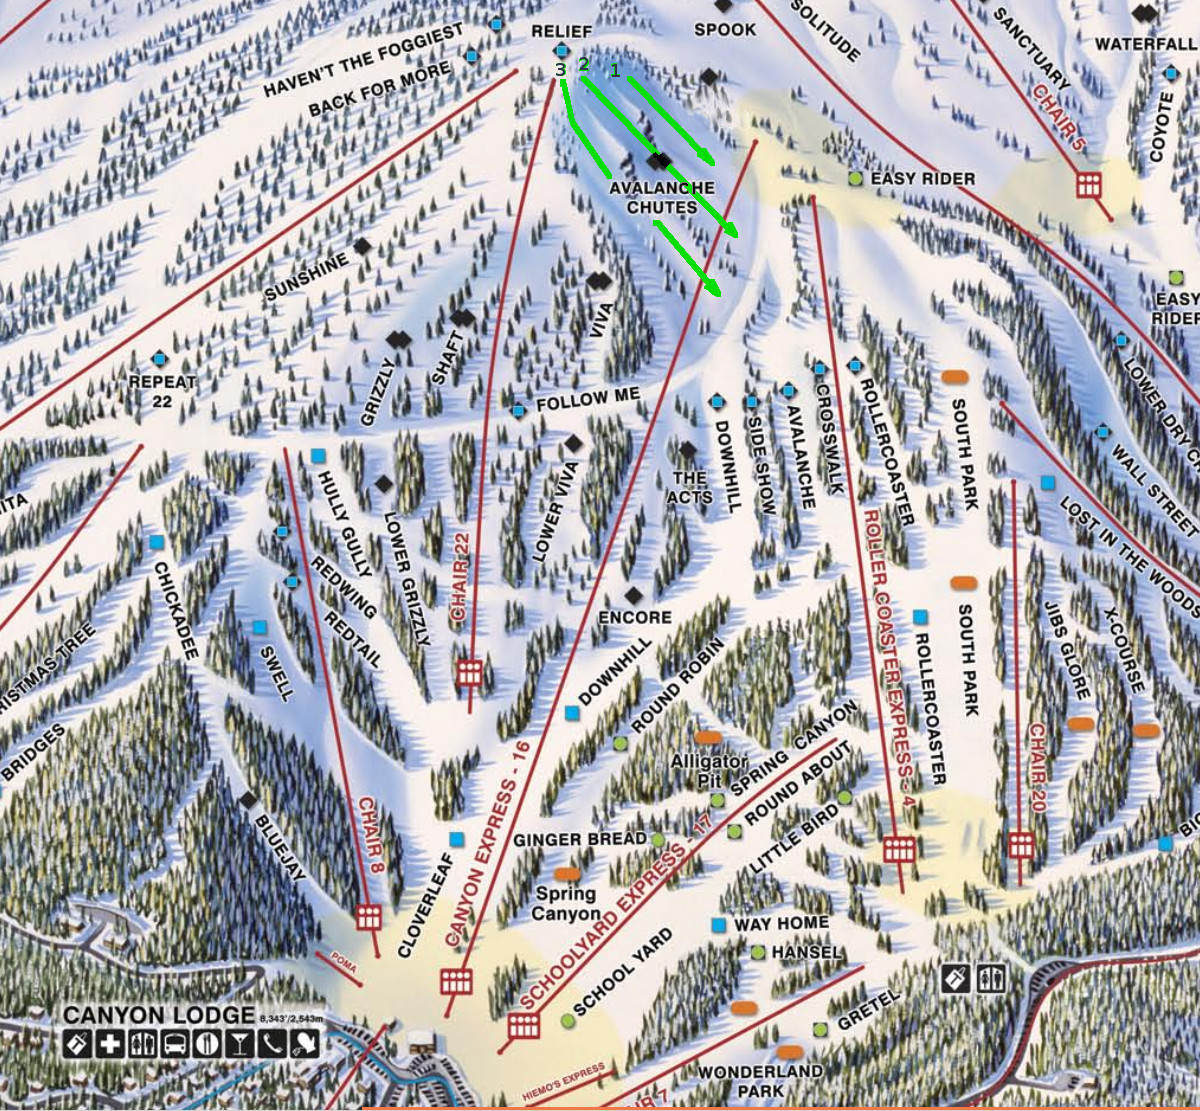 Mammoth Mountain: Lincoln Peak and the Avalanche Chutes on chief mountain trail map, bishop trail map, jericho mountain trail map, parker mountain trail map, map of vail mountain trail map, alpine meadows ski resort trail map, snowbasin mountain trail map, mammoth trail map pdf, salisbury ct trail map, catalina mountain trail map, attitash bear peak trail map, laurel mountain trail map, mendocino trail map, ski mountain map, mammoth mtn trail map, morgan creek trail map, powder mountain trail map, city park bike trails map, snowbird mountain trail map, big mountain trail map,